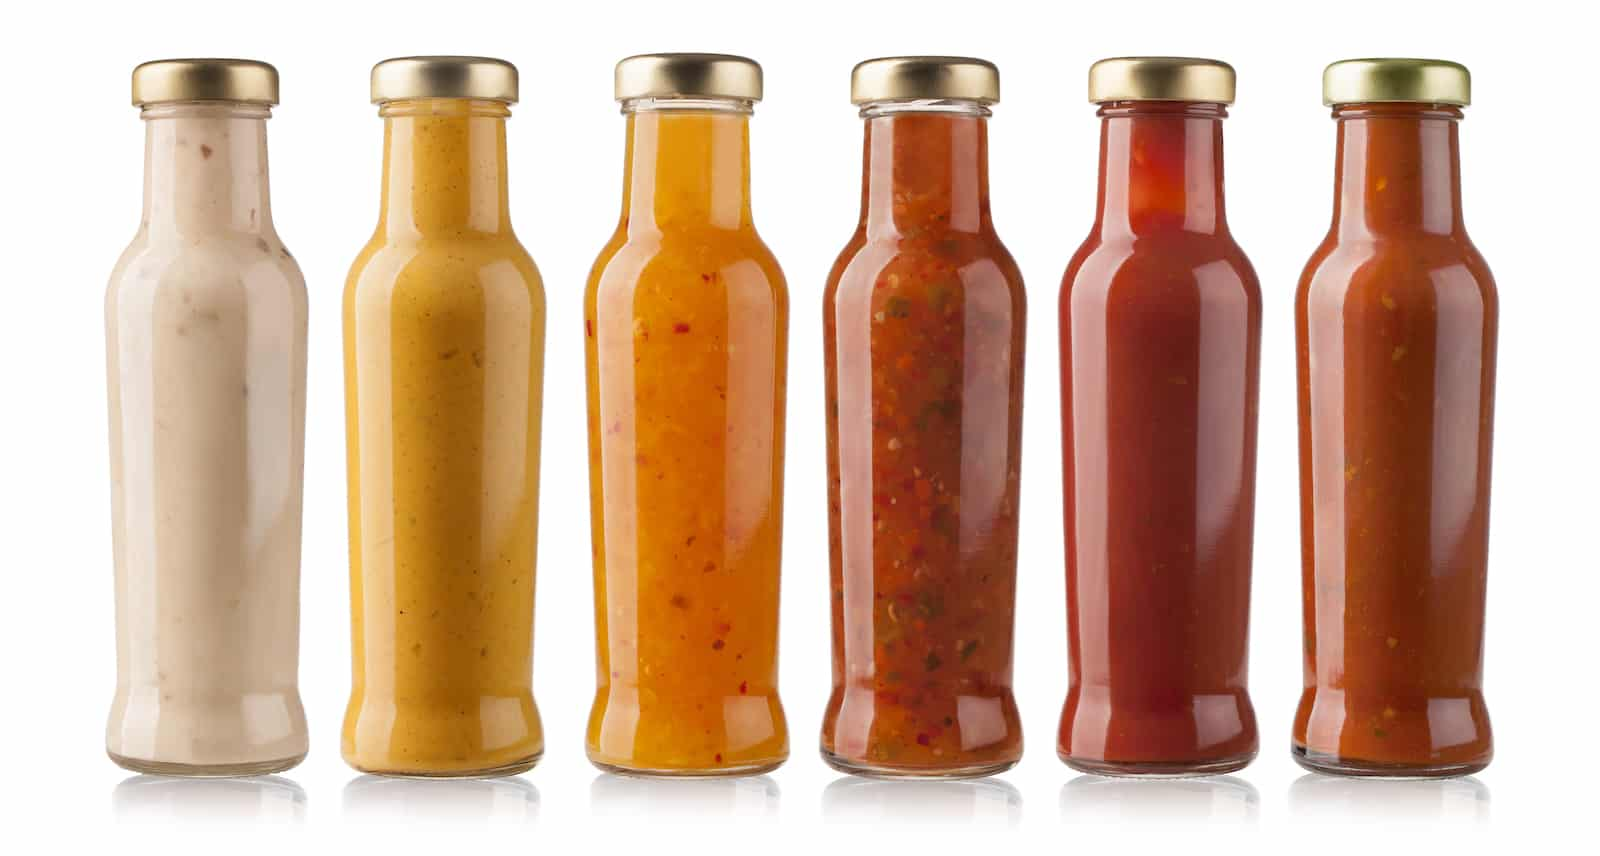 How To Make Hot Sauce 101: What You Need And What To Do